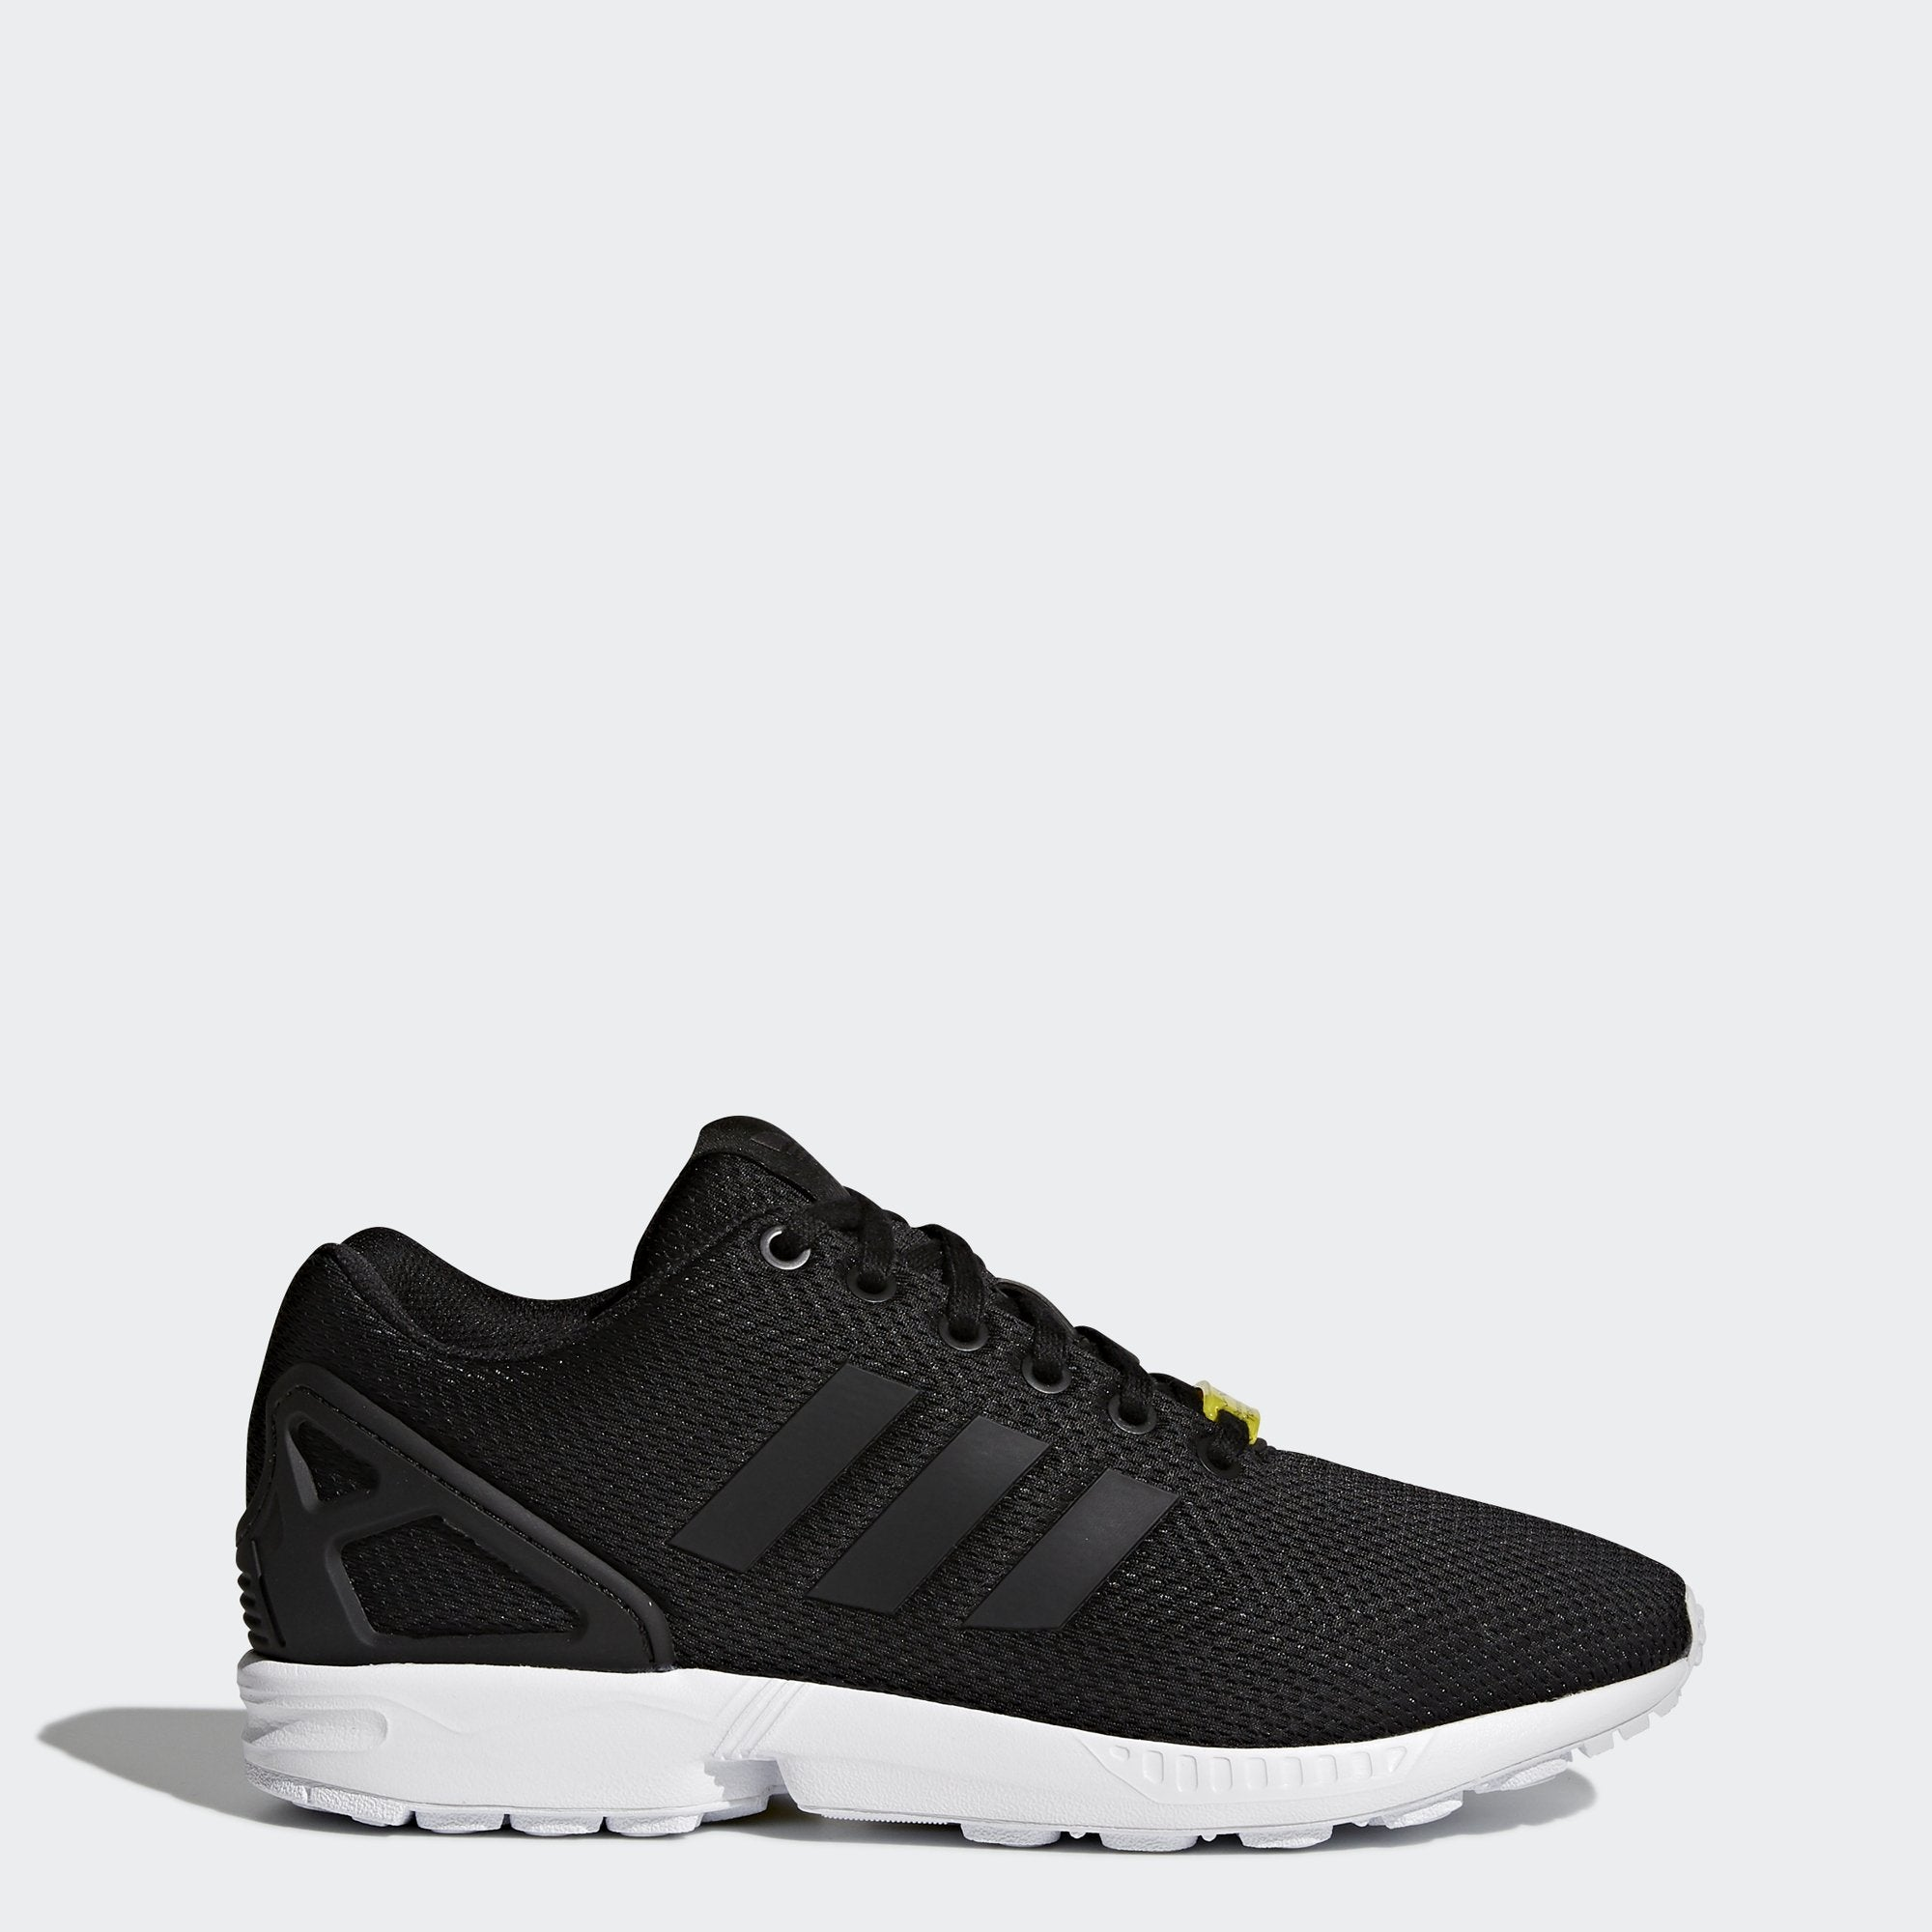 35d92b75d ... promo code for adidas zx flux shoes branded feet 9336d c655b ...